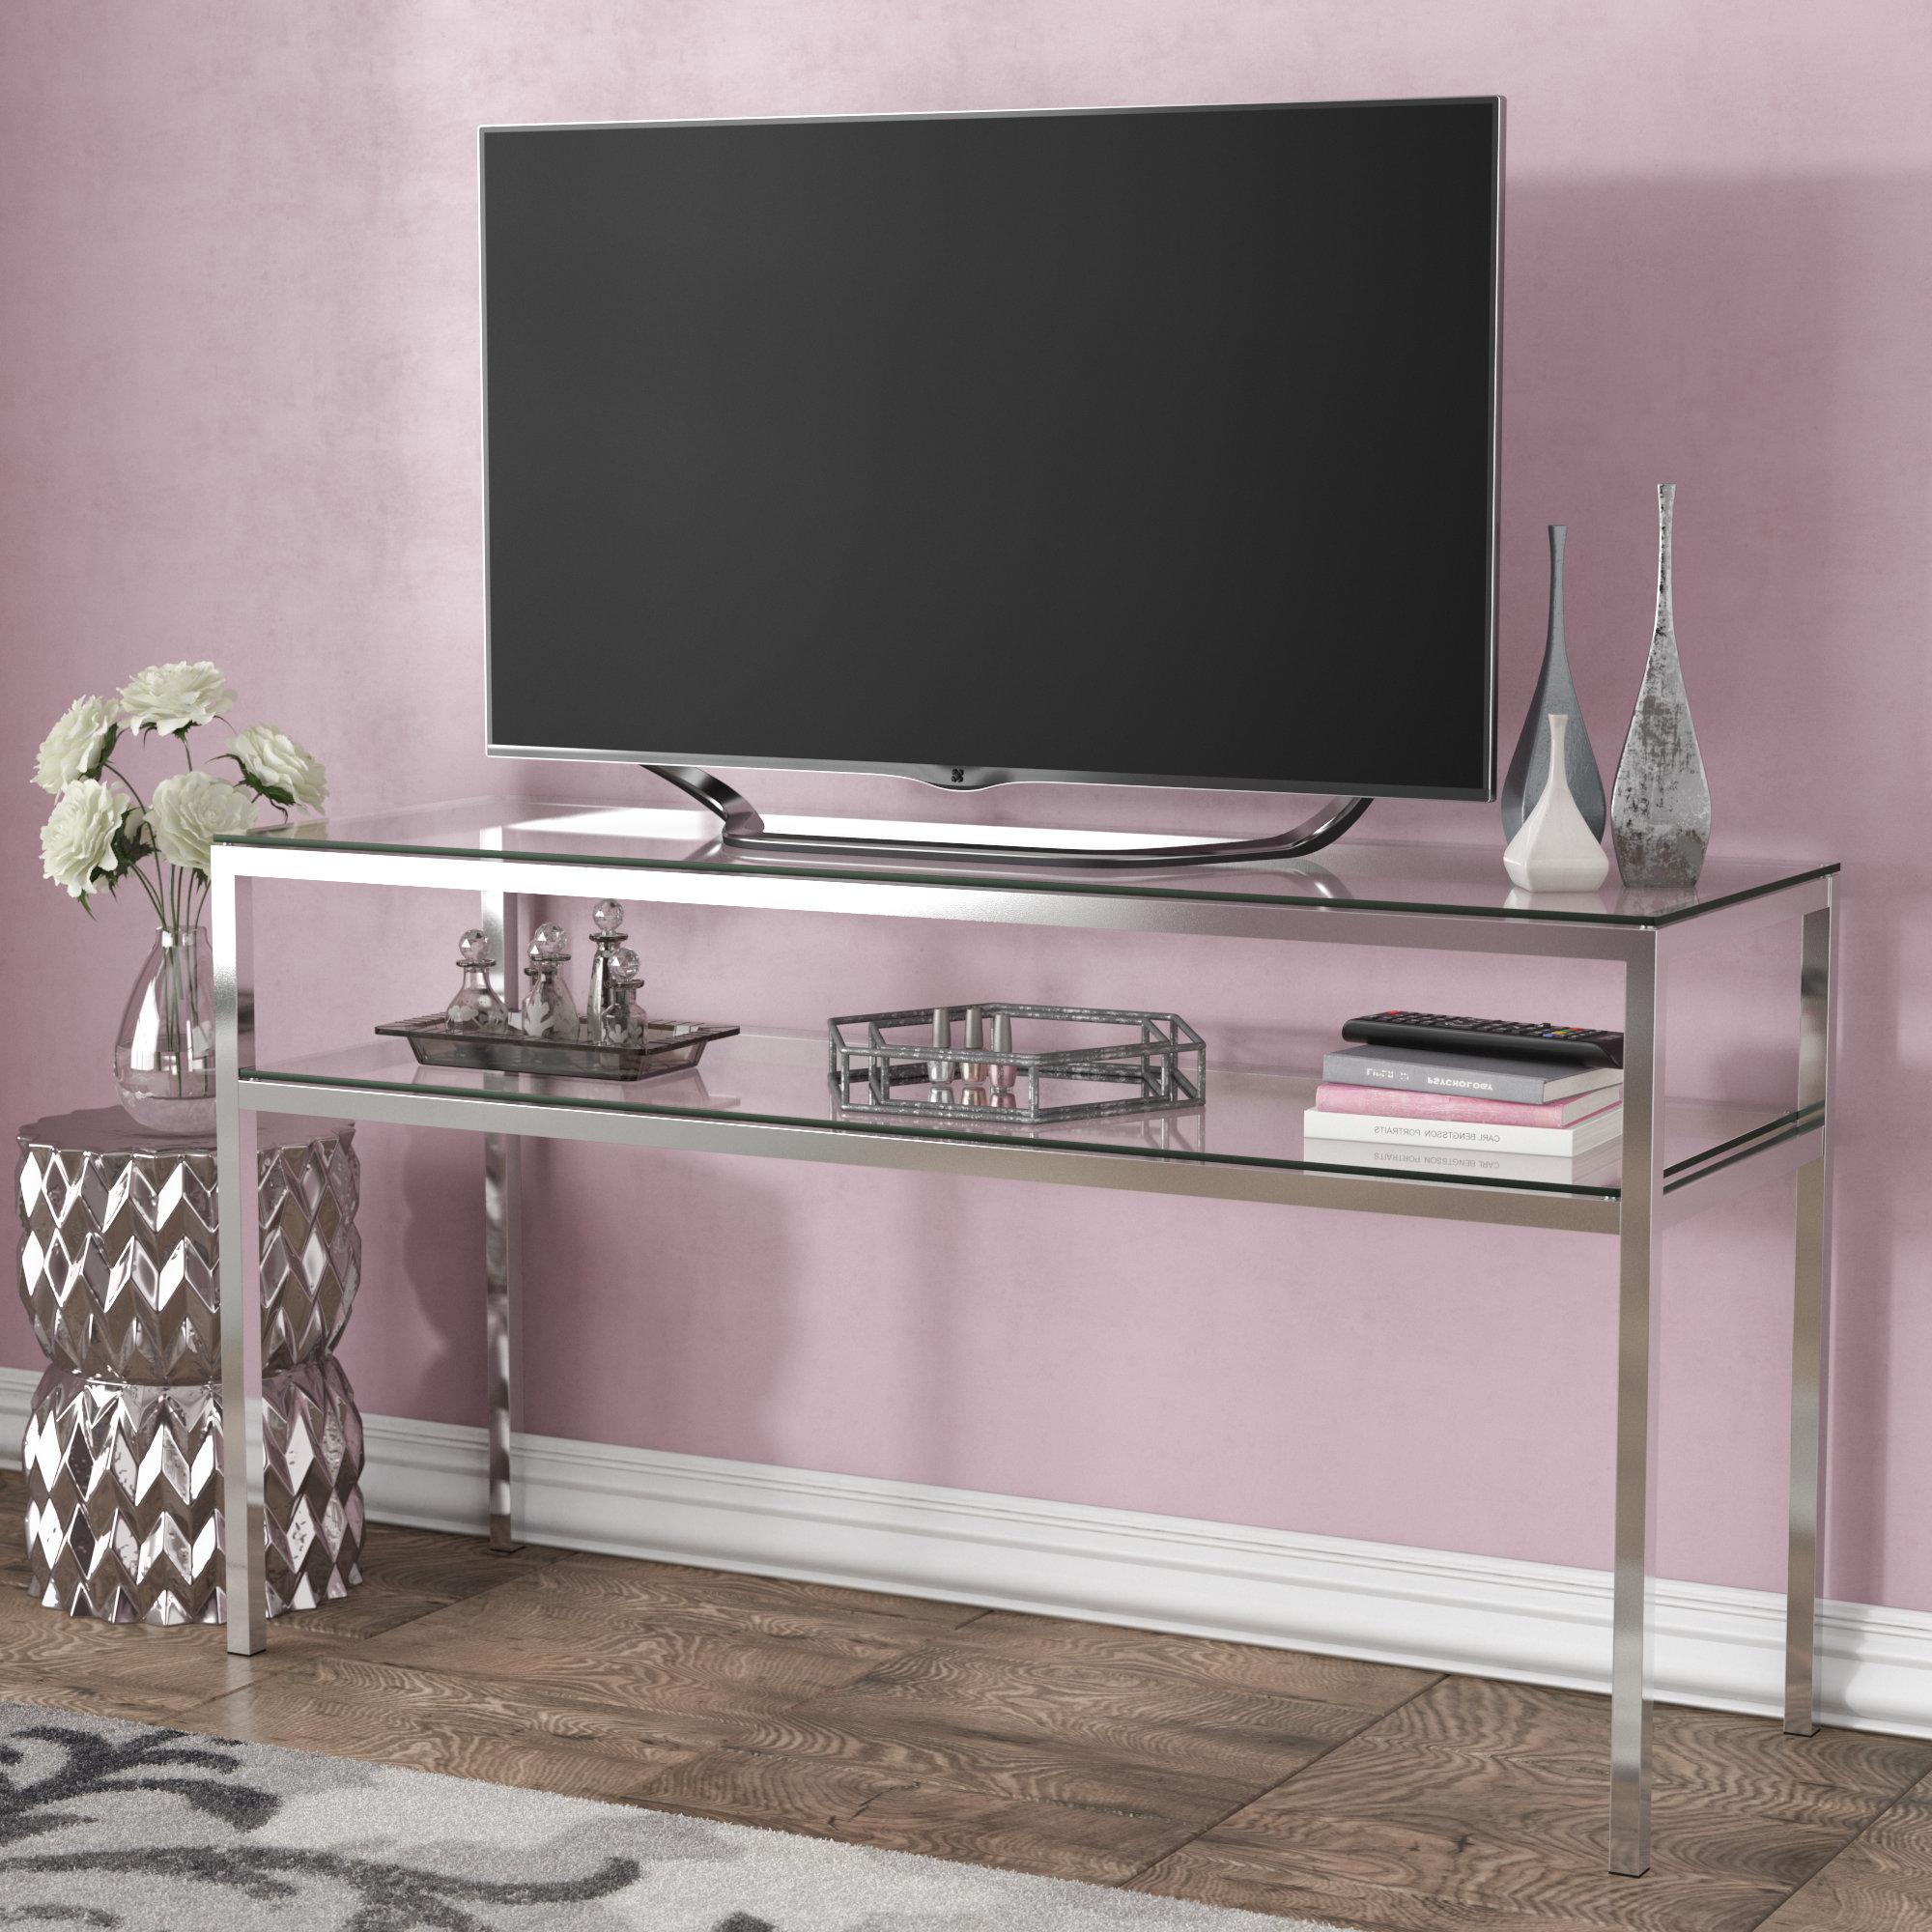 60 69 Inch Tv Stands You'll Love | Wayfair (View 14 of 20)